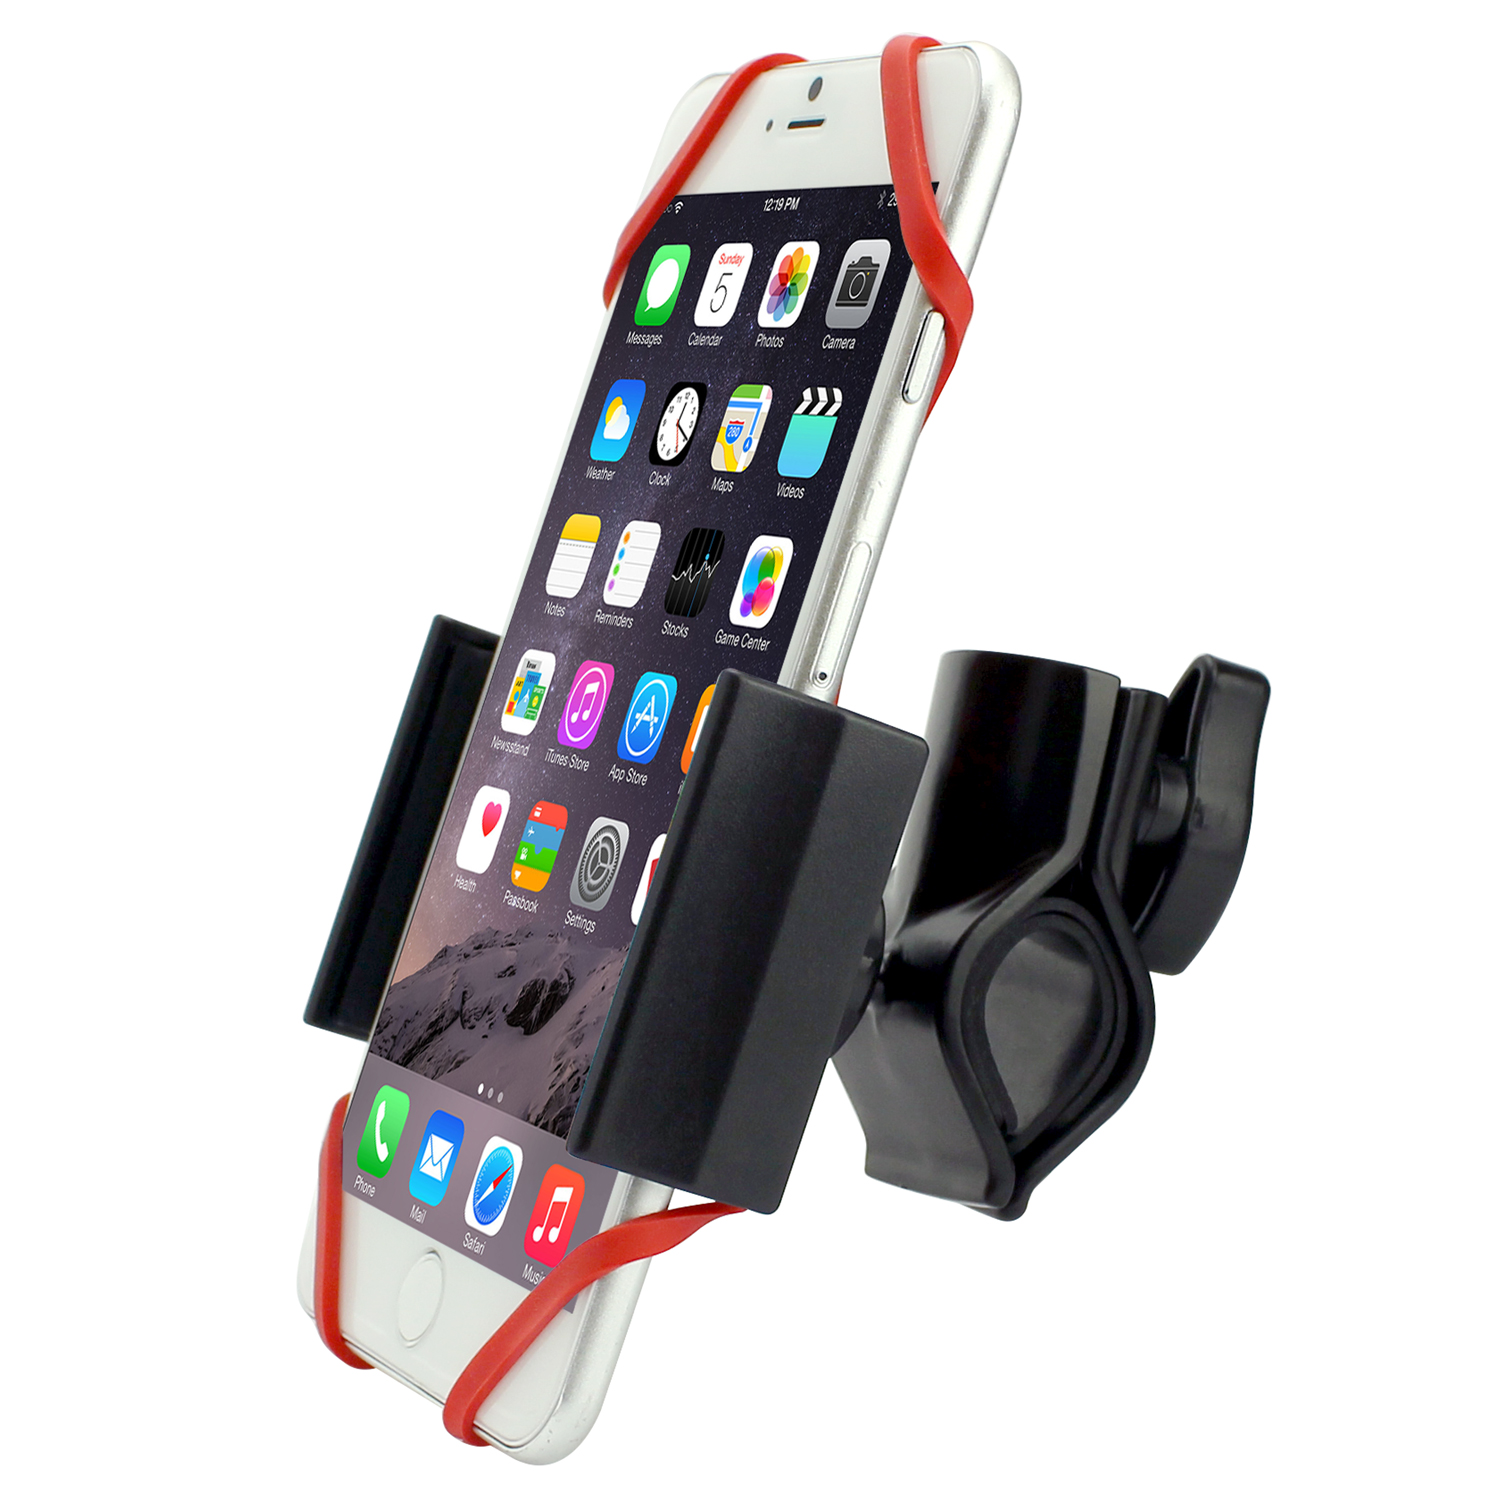 Huawei Union Bike Phone Mount Adjustable Black